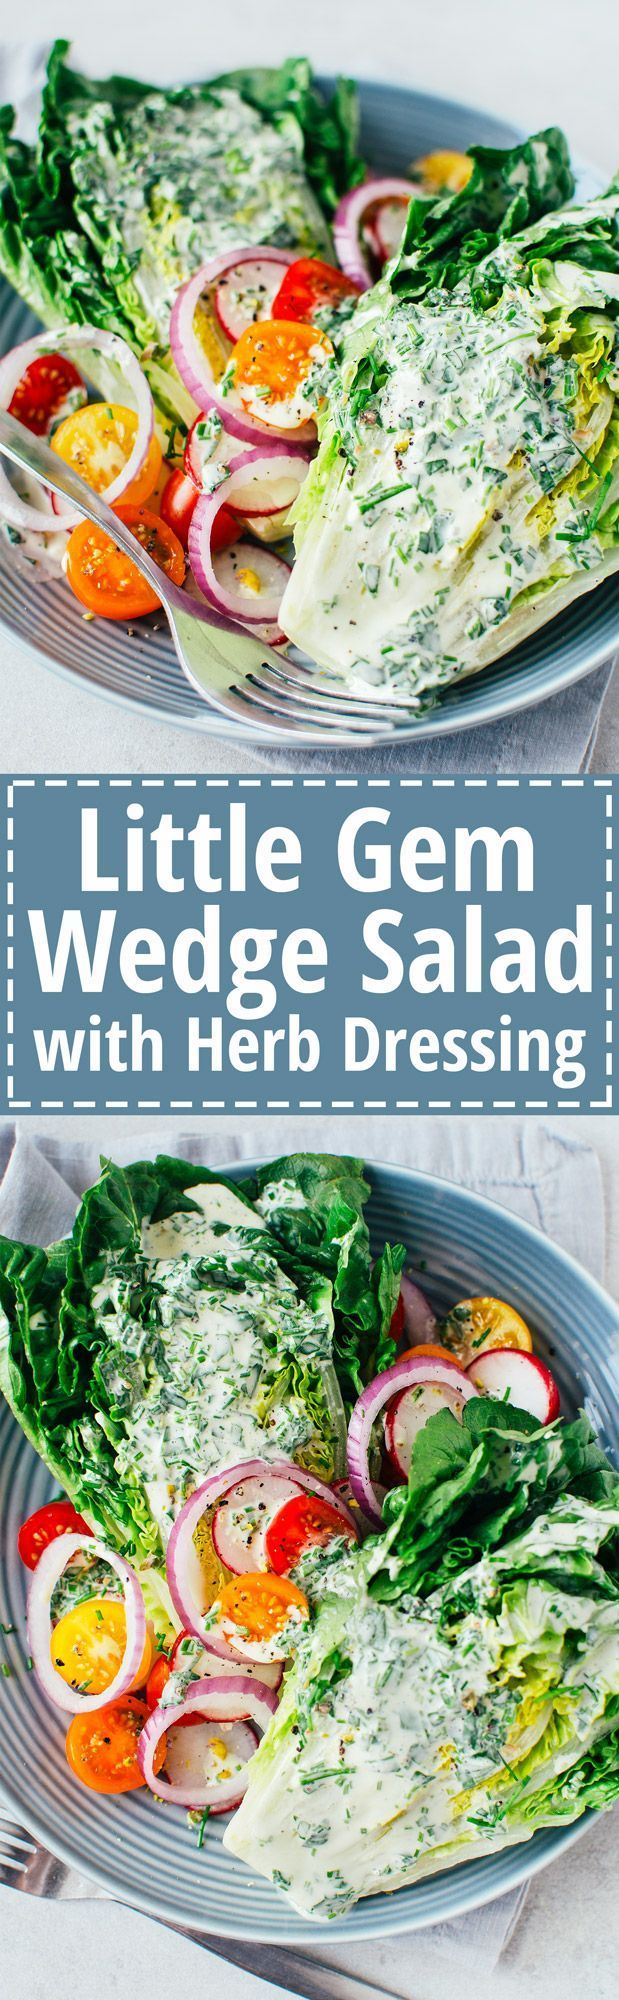 Little Gem Wedge Salad w/ Herb Dressing - A light and refreshing new take on the classic wedge salad. If nothing else make this dressing, it's soooo good. (Vegan & GF) | RECIPE at http://Nomingthrulife.com